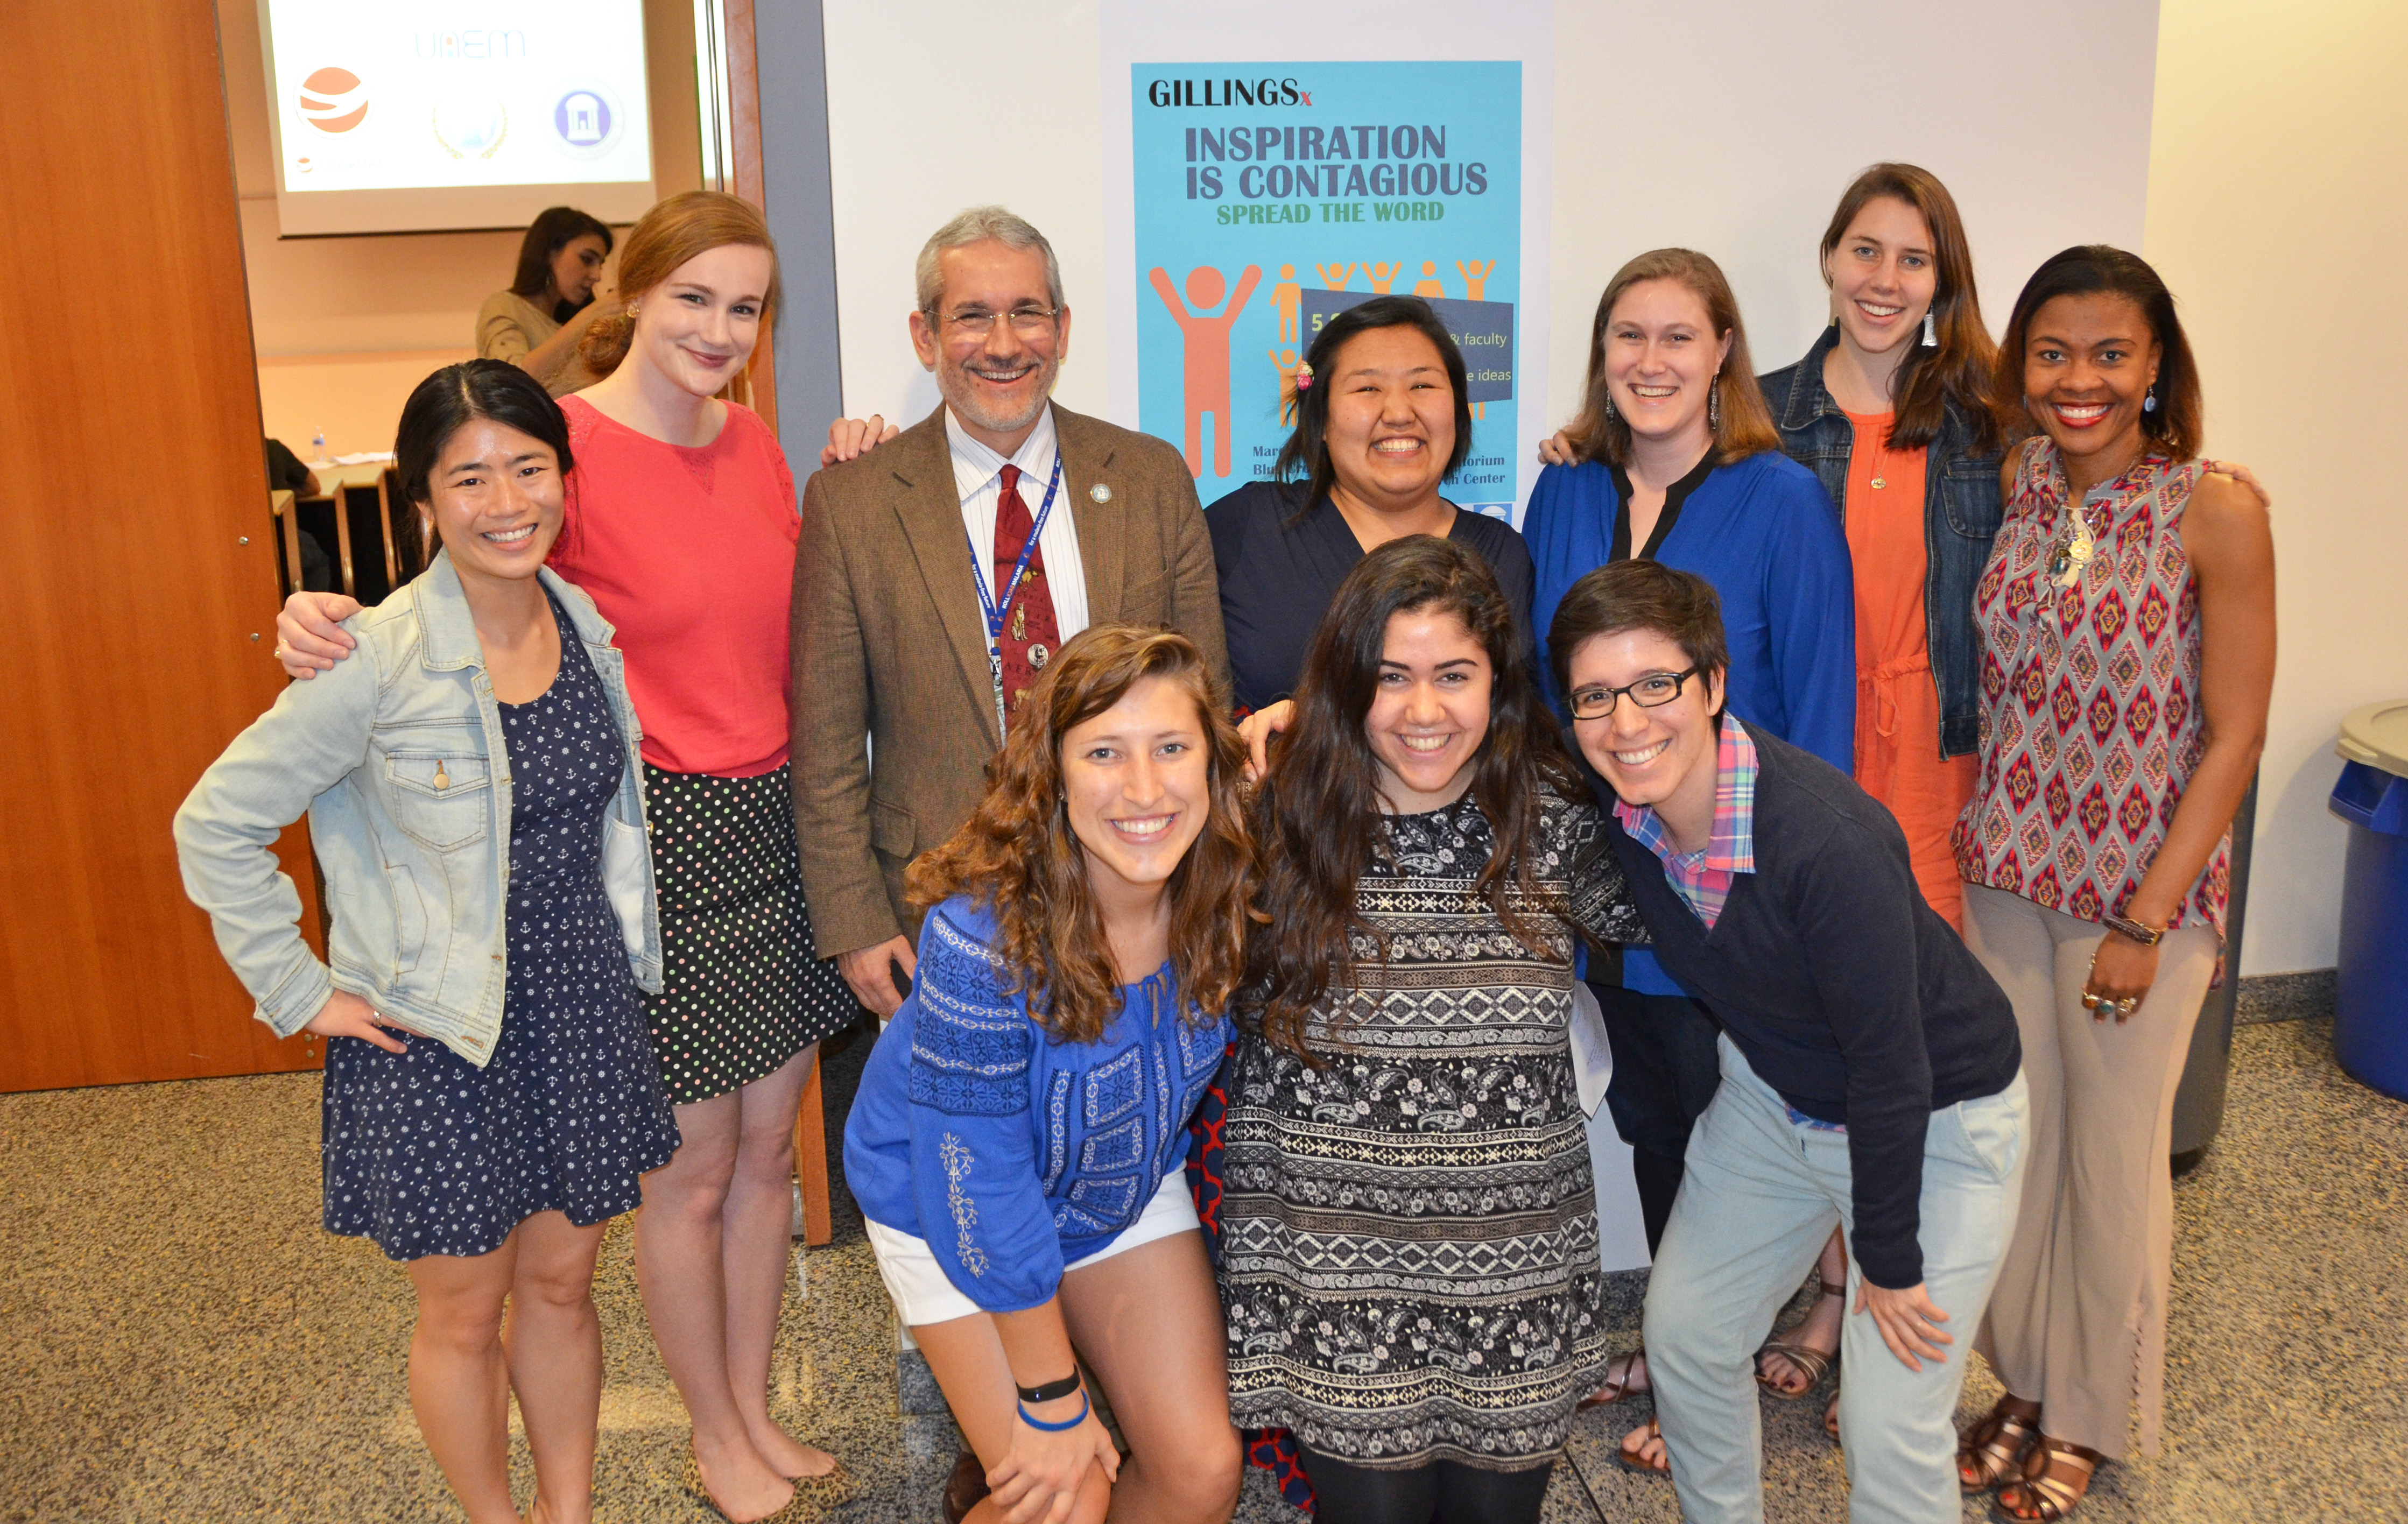 The student Global Health Committee organizes the annual GillingsX talks.